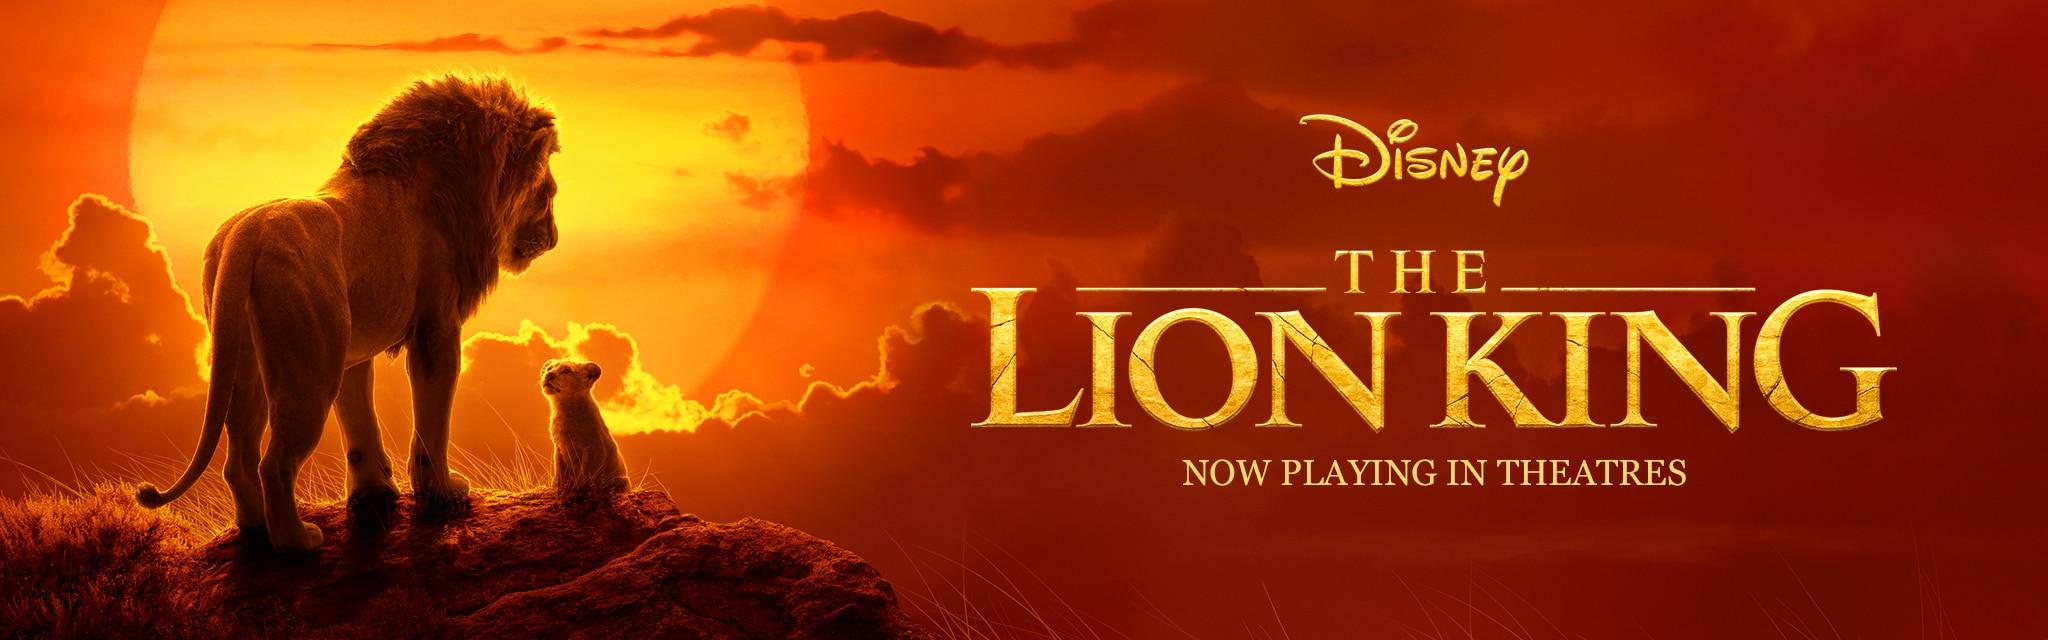 The Lion King Now Playing